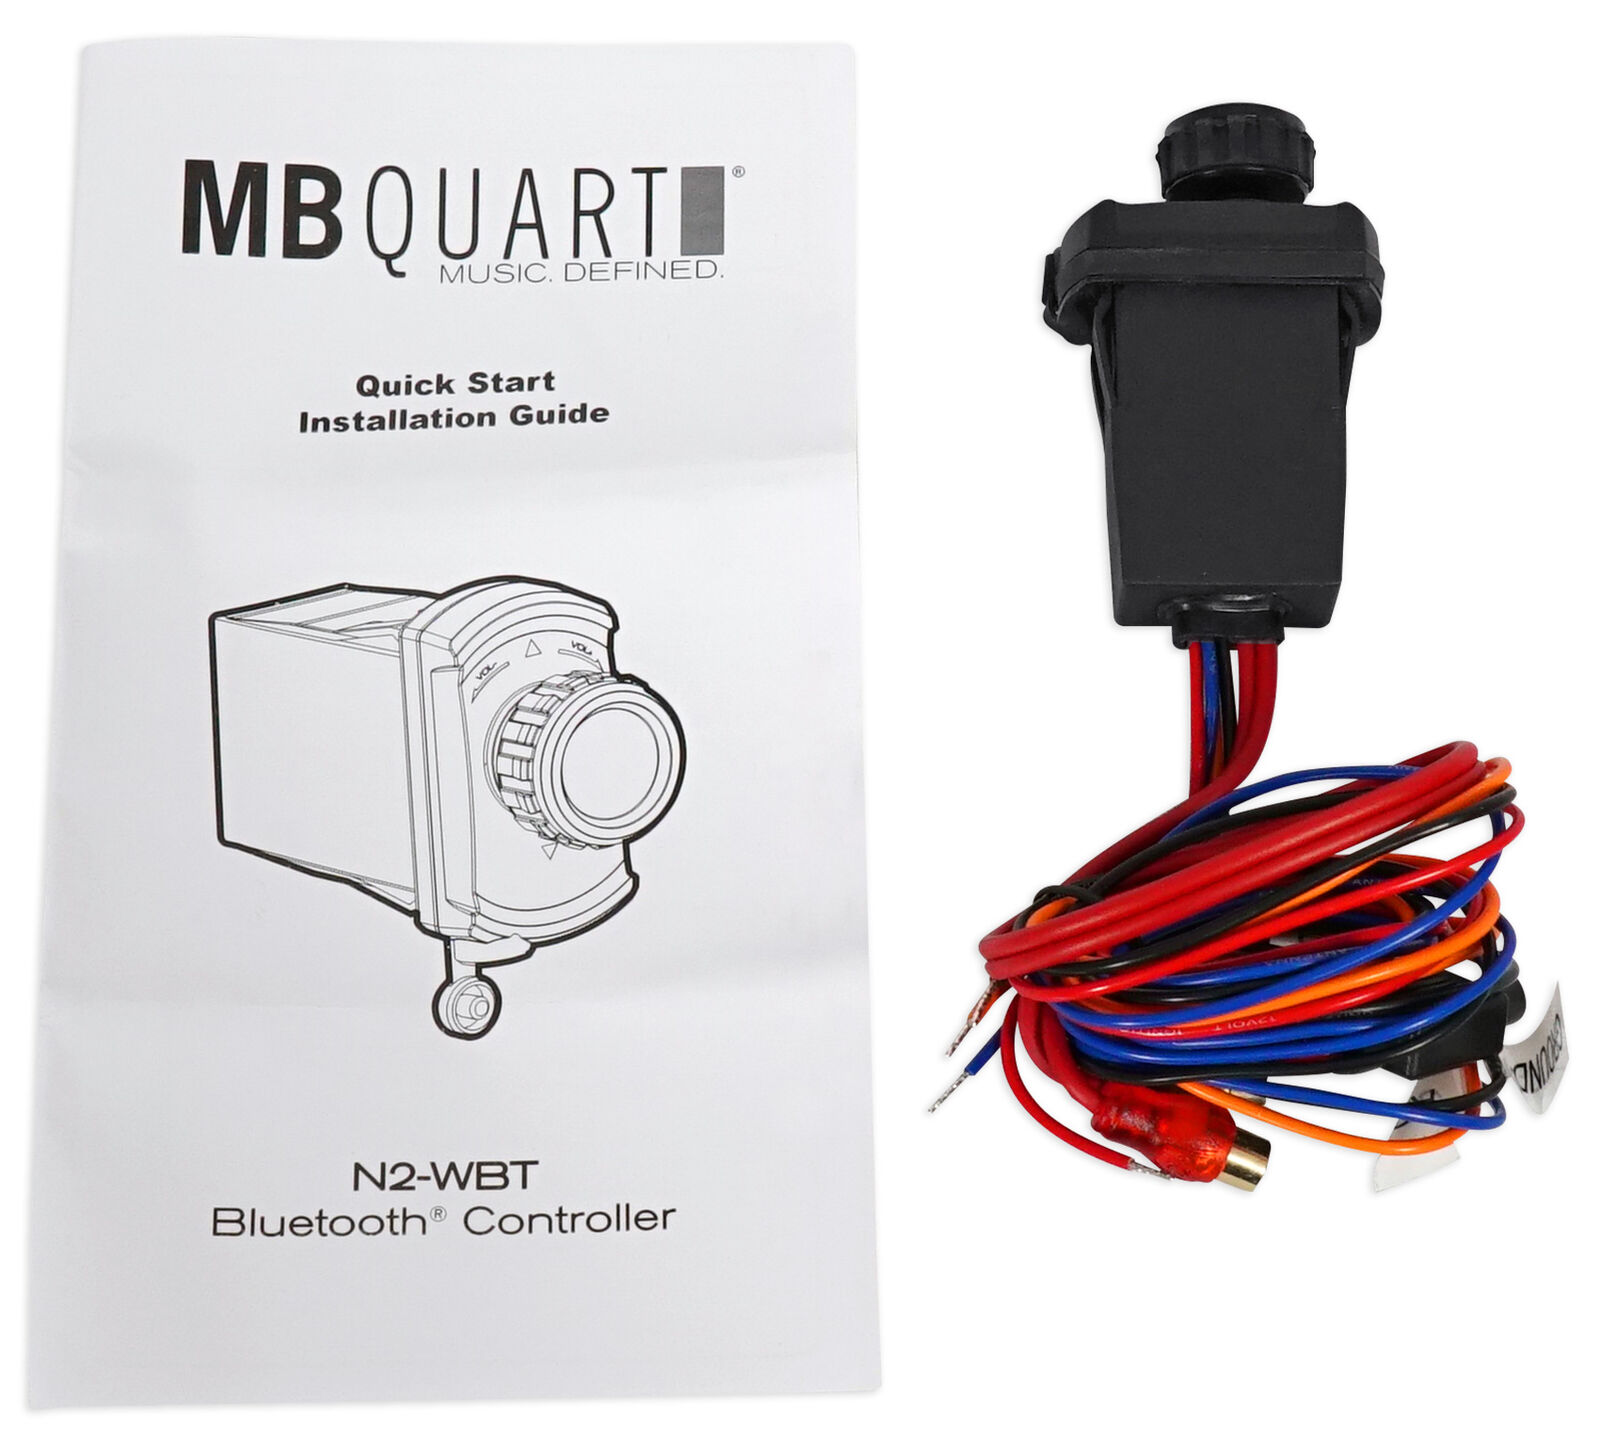 hight resolution of mb quart n2 wbt wired bluetooth preamp controller for polaris atv alpine wiring diagram mb quart wiring diagram